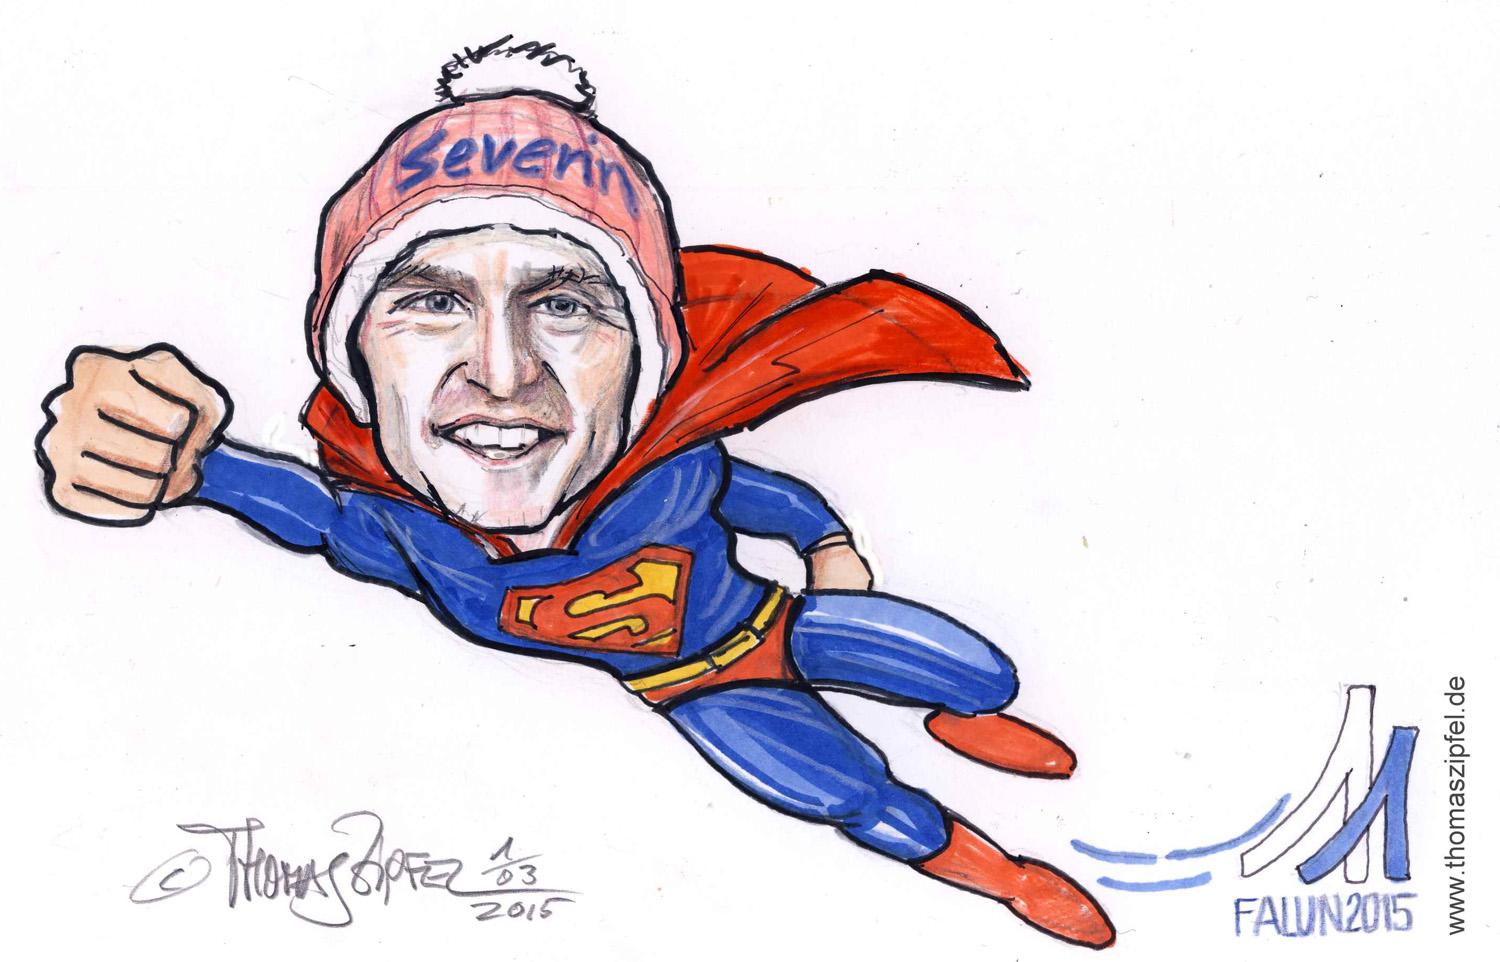 Severin Freund Superman